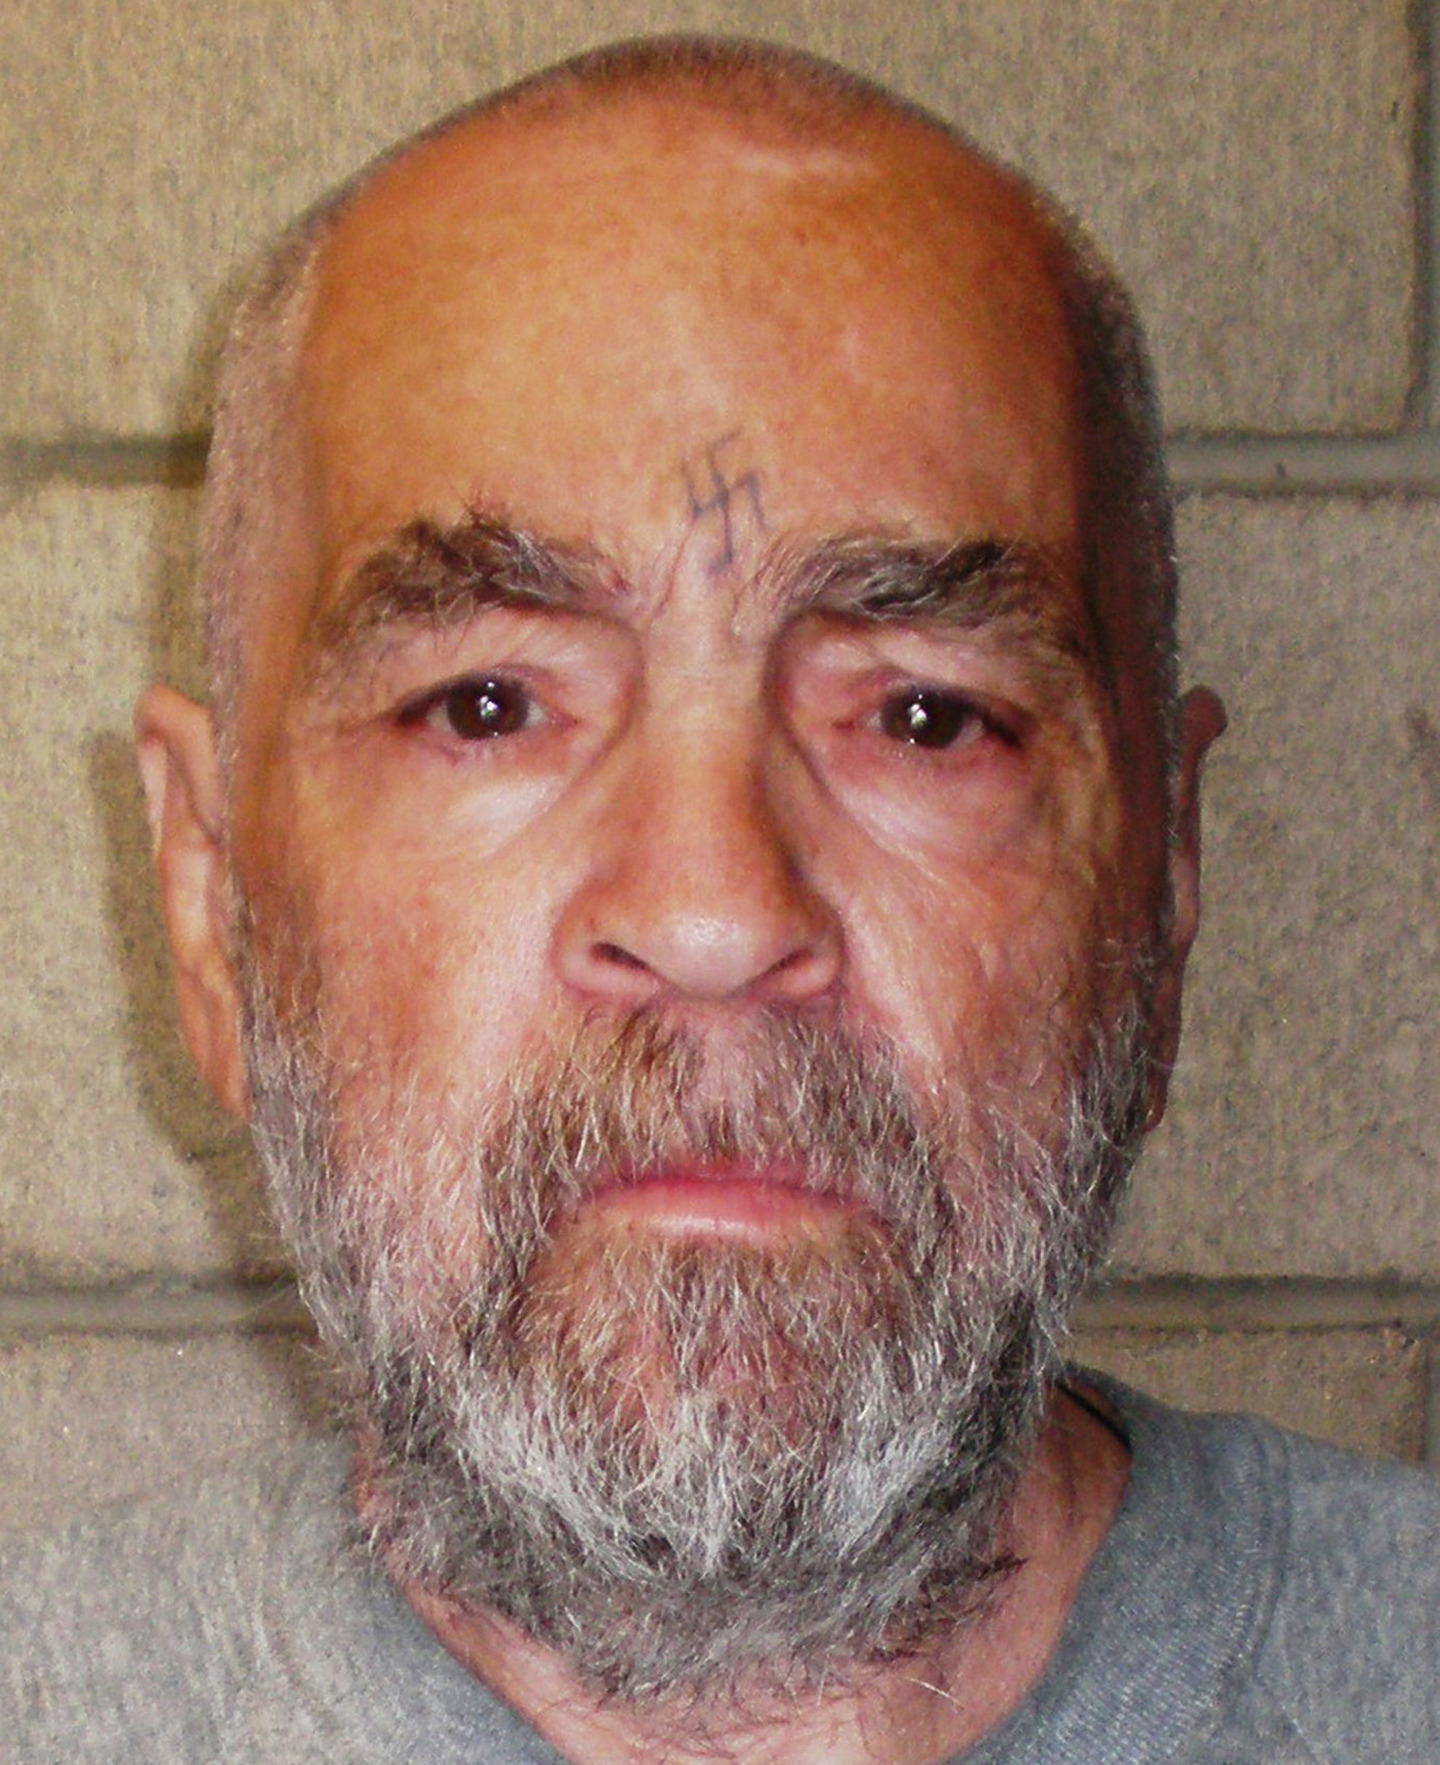 Charles Manson in 2009 photograph released by the California Department of Corrections and Rehabilitation. (Getty Images)